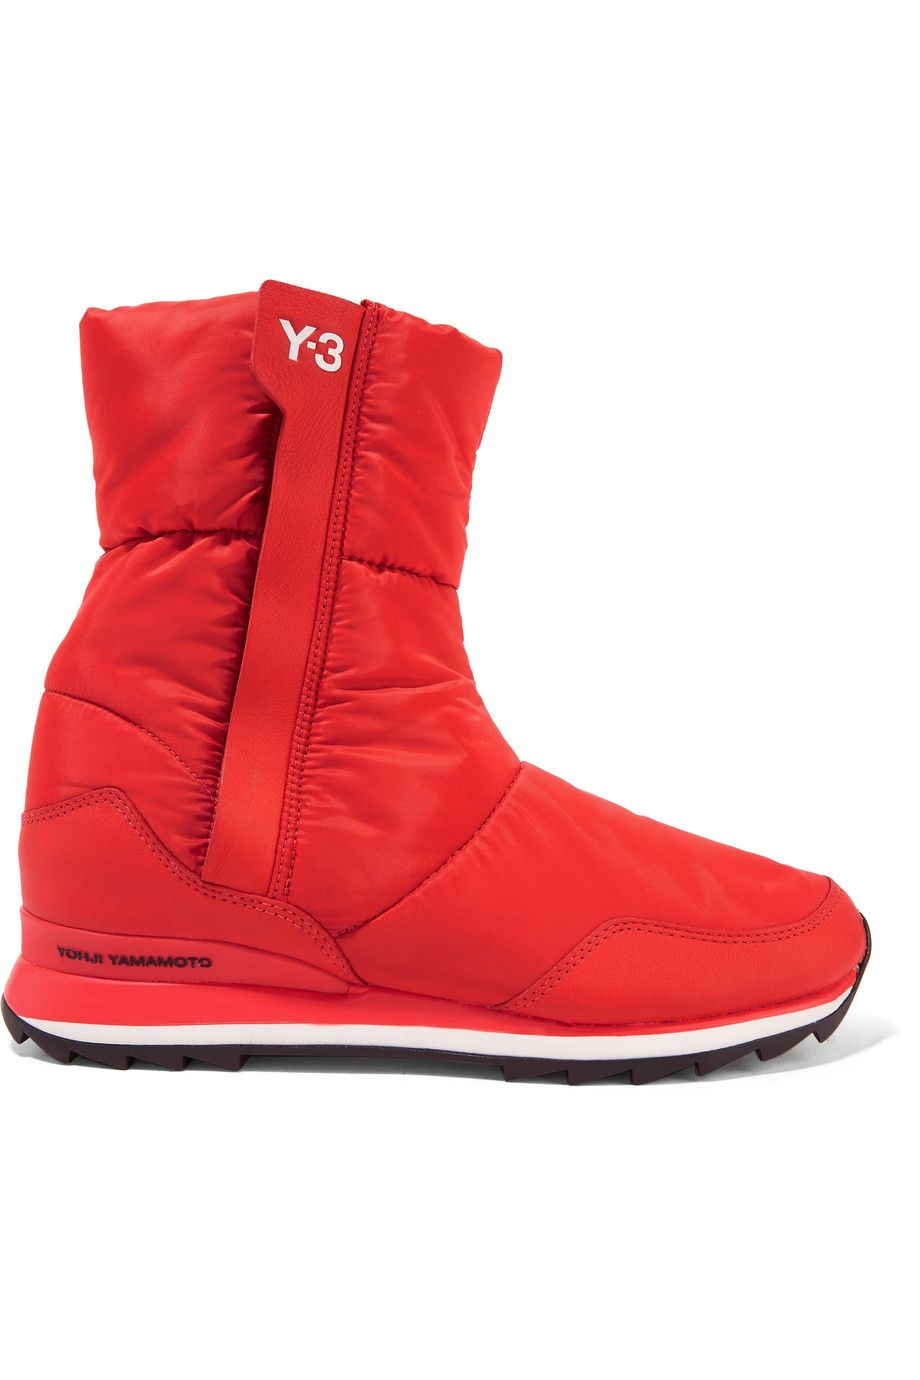 Y-3 + Adidas Originals Rhita Leather-Trimmed Quilted Shell Boots ... : adidas quilted boots - Adamdwight.com